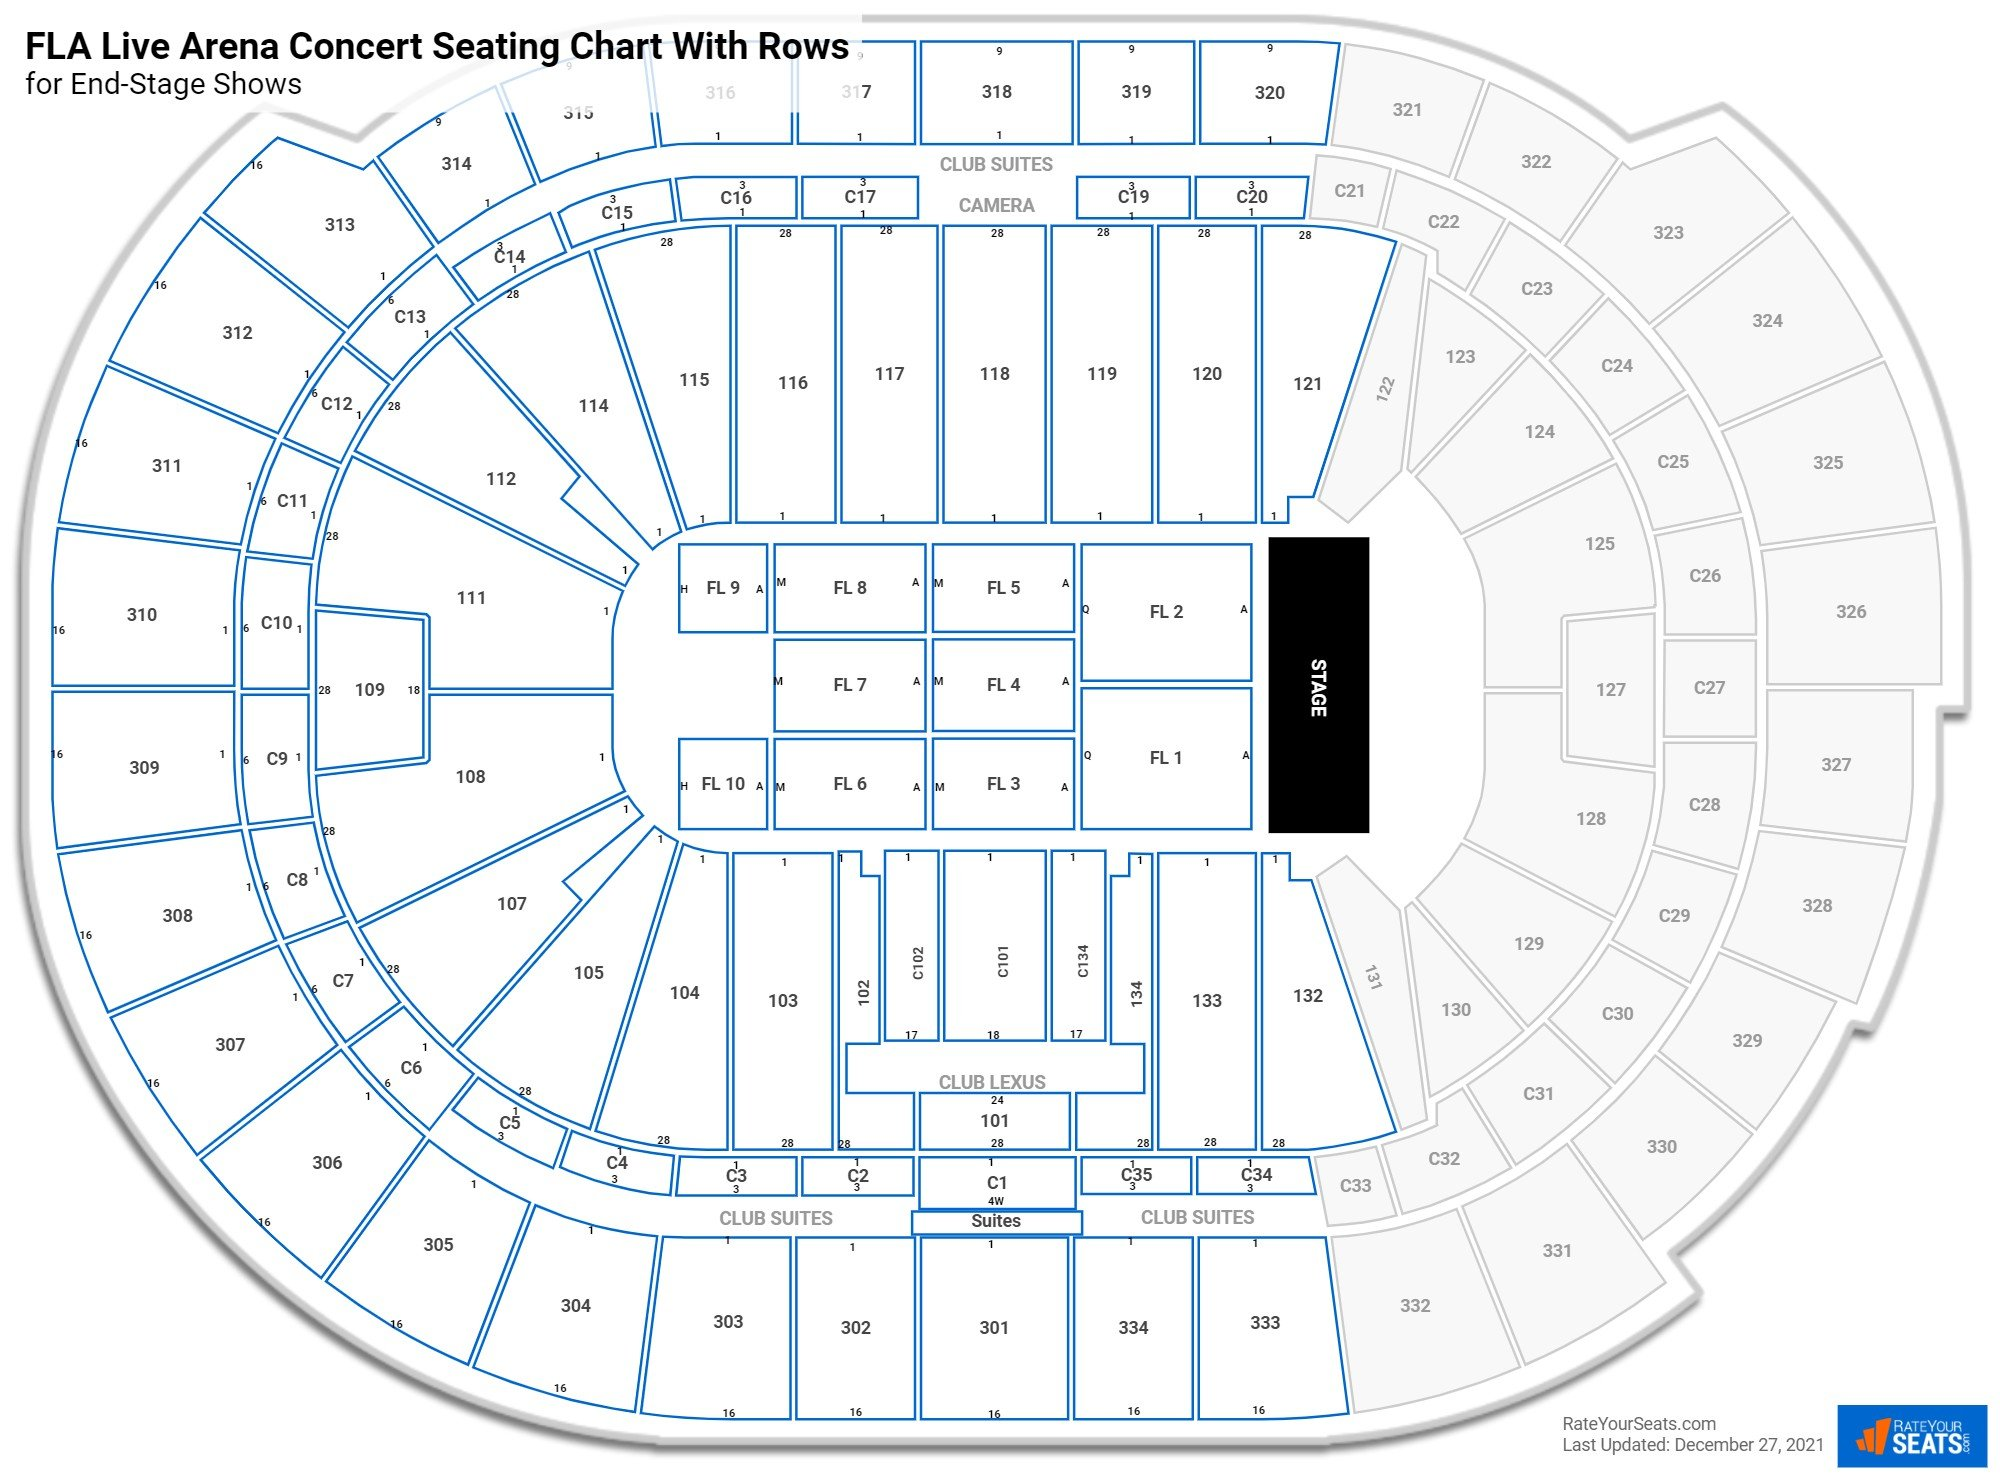 BB&T Center seating chart with rows concert